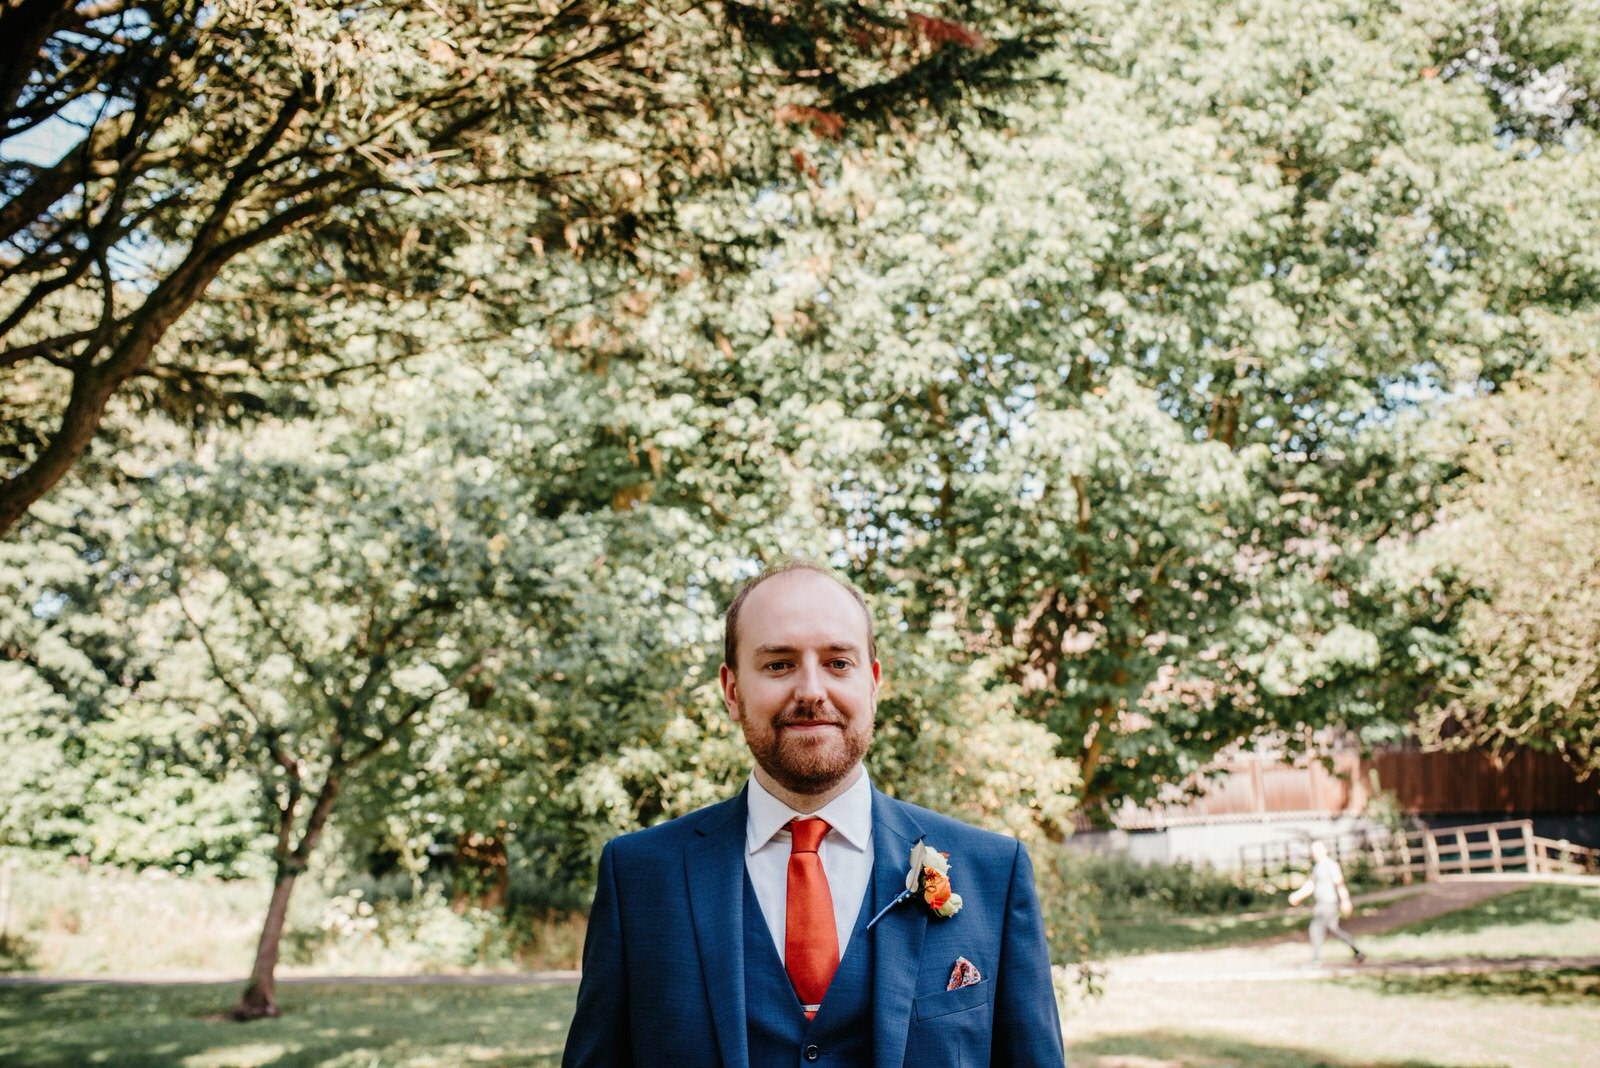 Groom wearing navy suit, orange tie and orange boutonniere outside the Royal College of Music and Drama